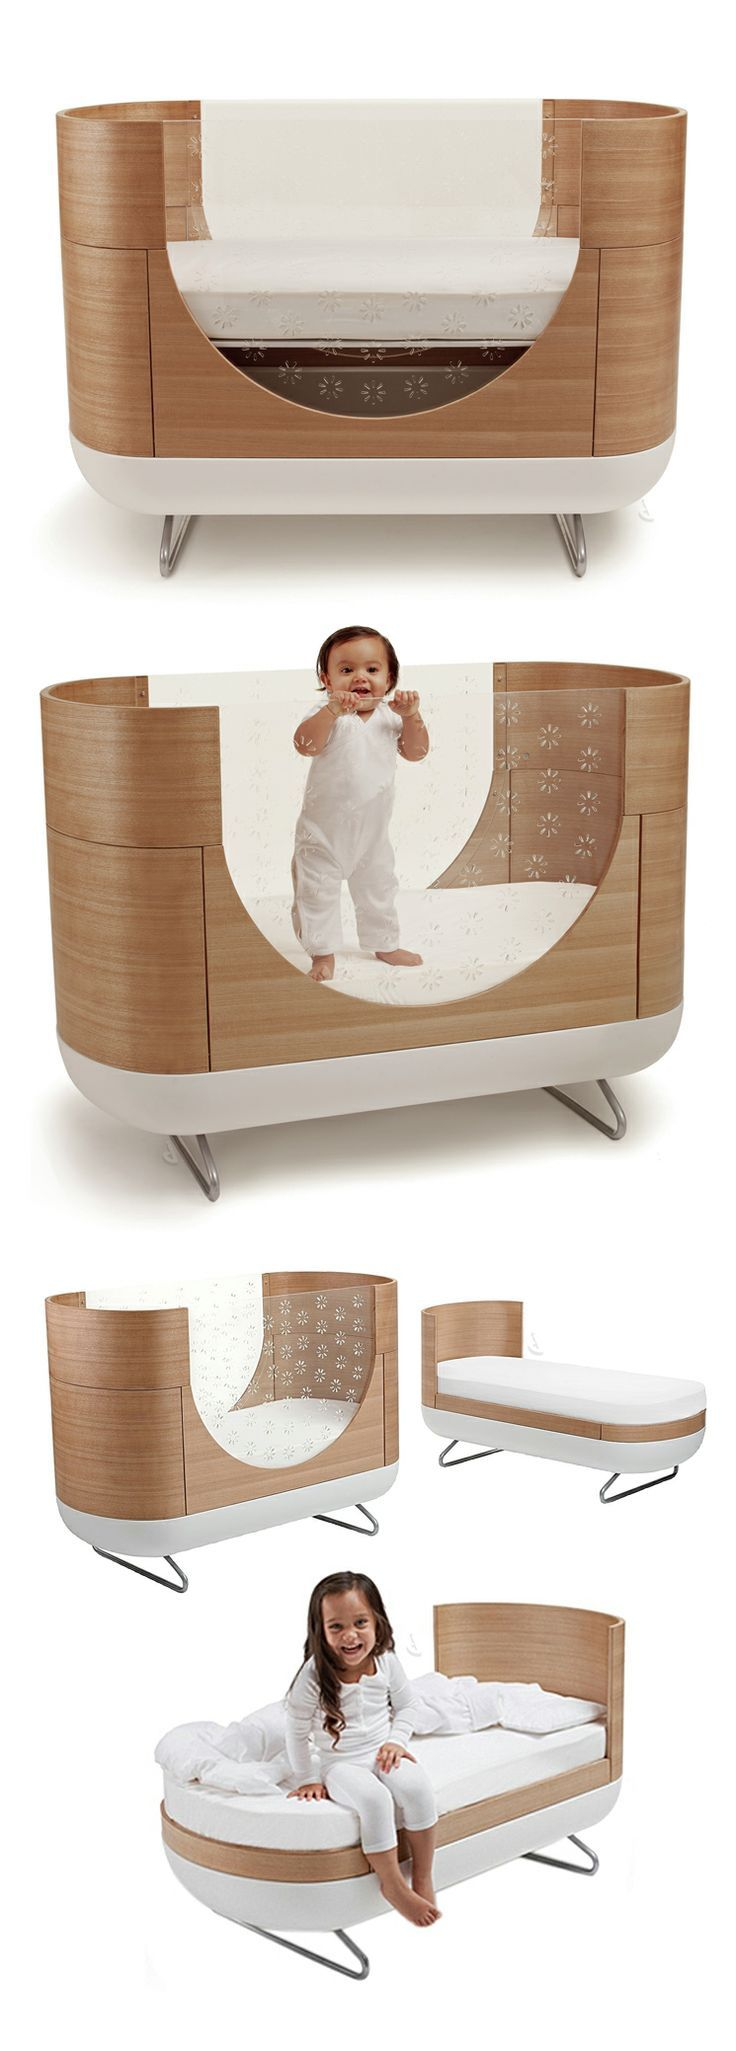 Ubabub Pod Crib // eco-friendly modern design converts into a toddler bed! #product_design #furniture_design #baby